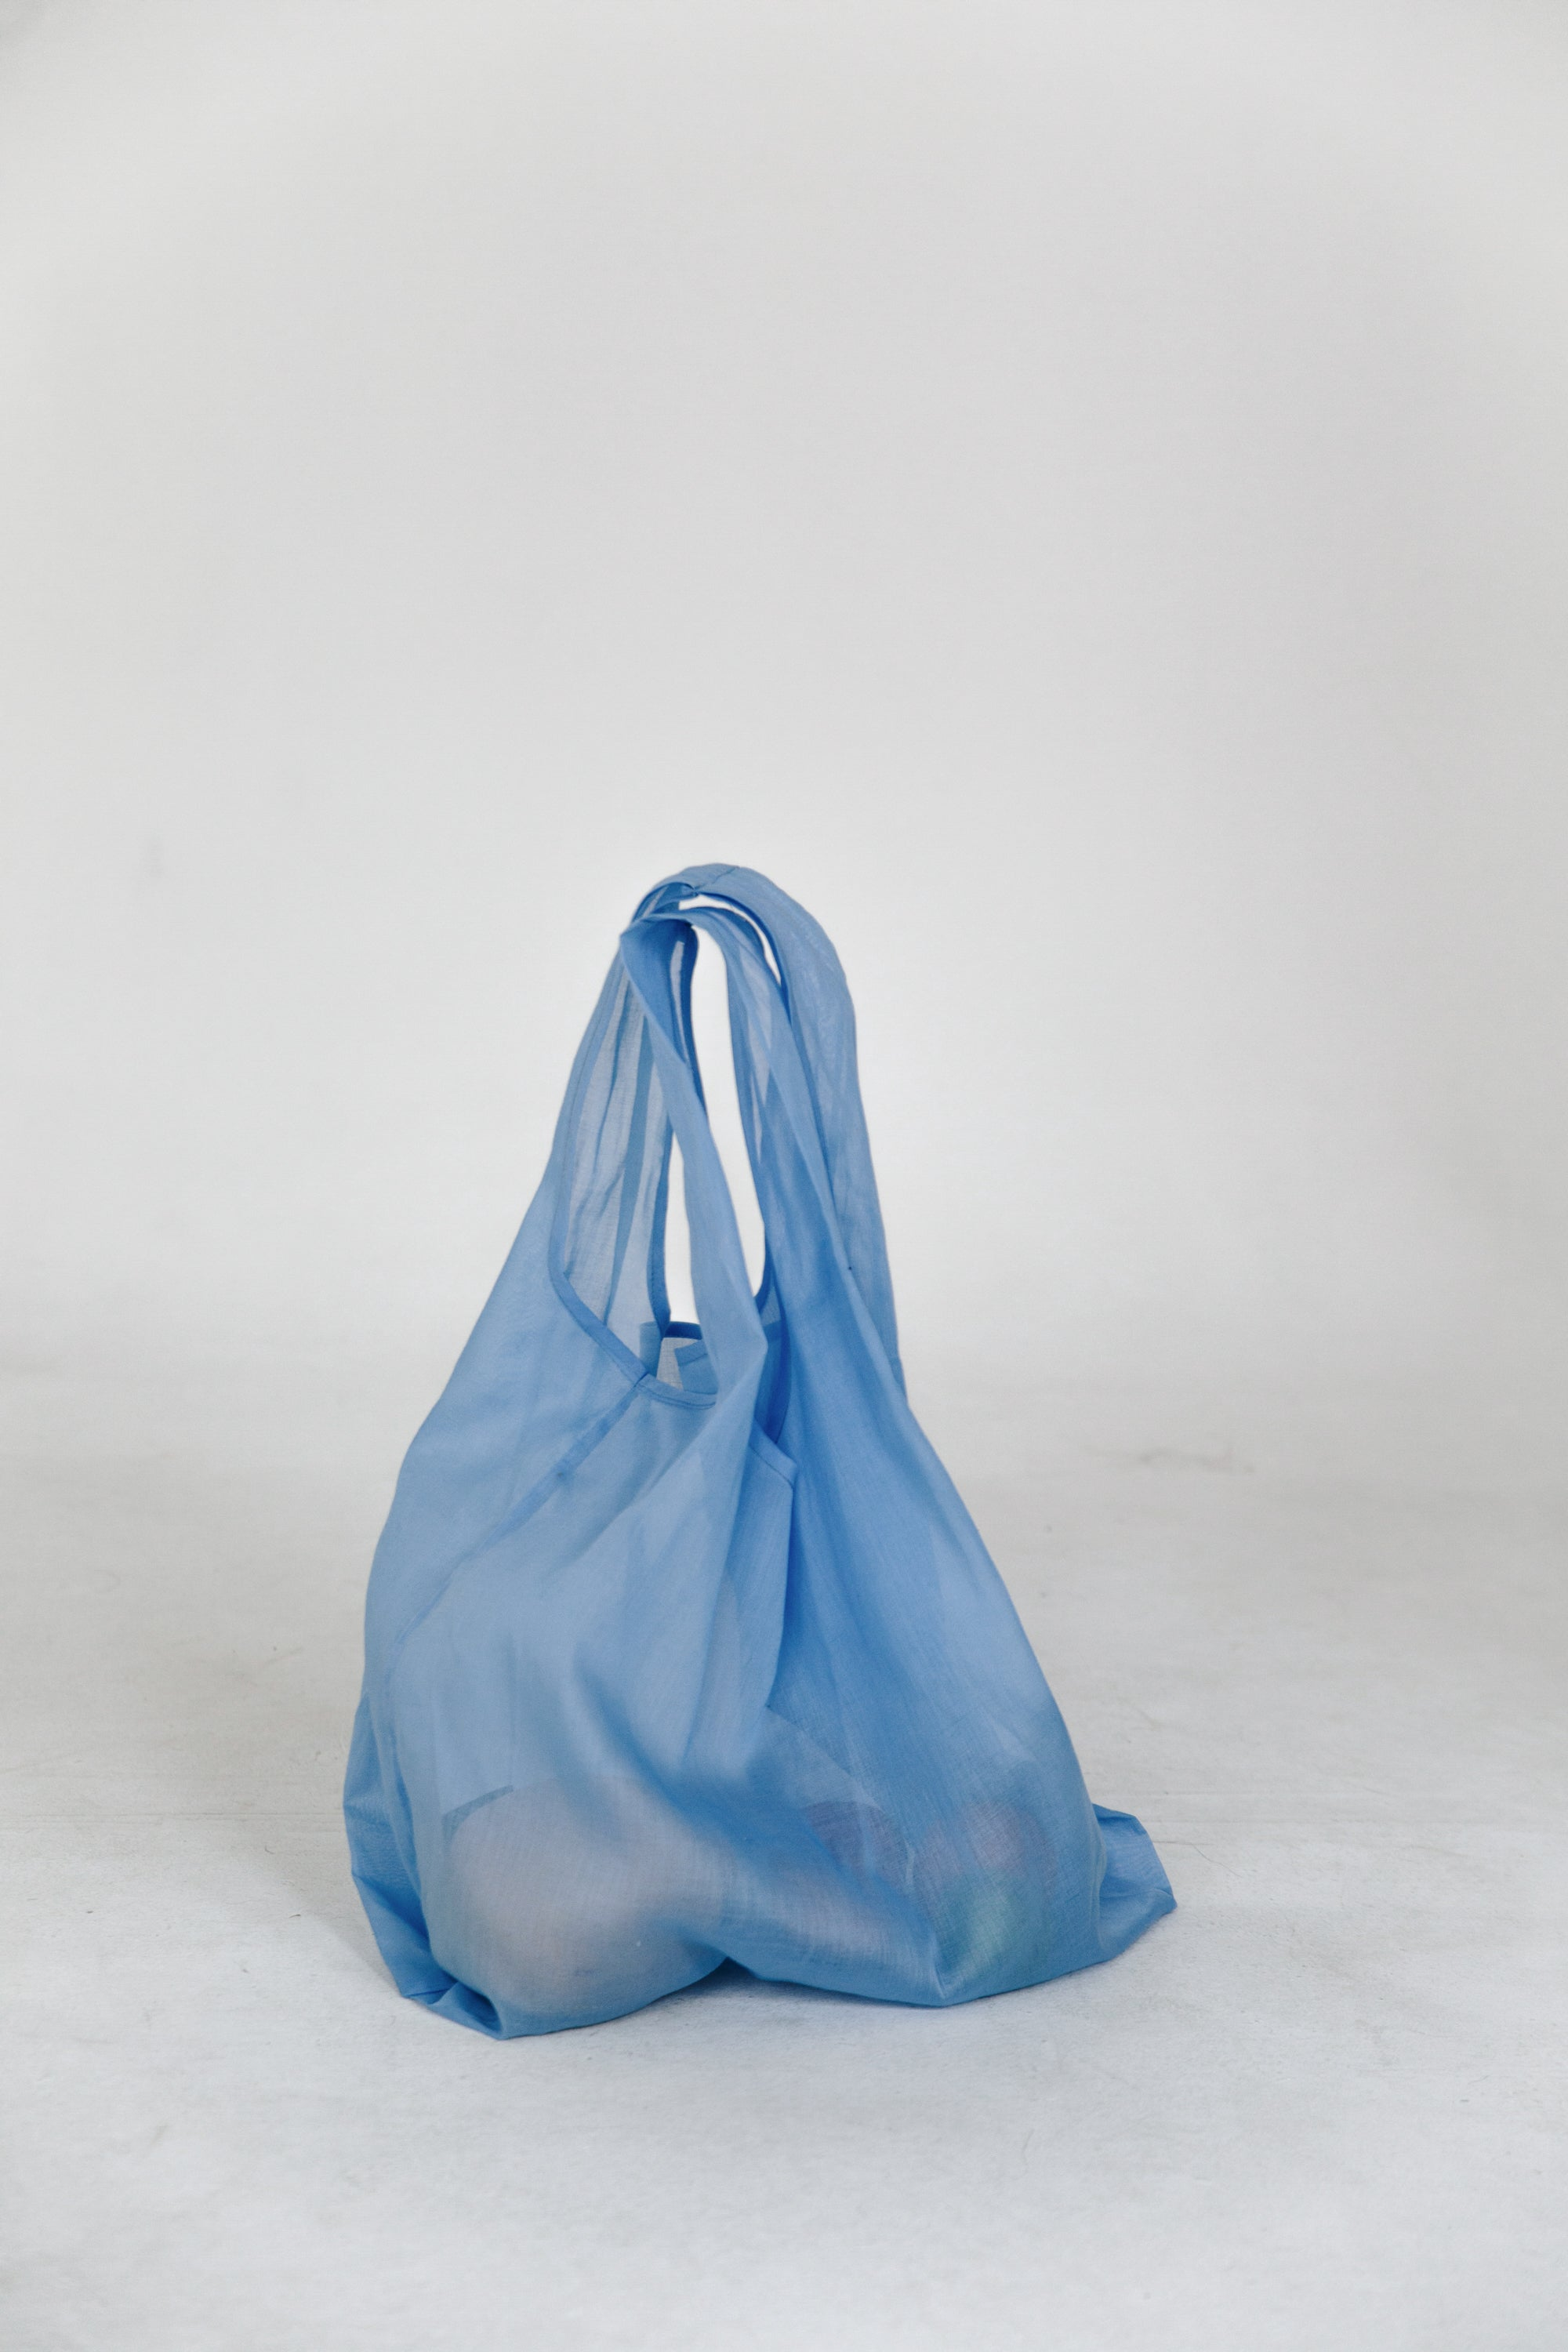 Baby blue sheer tote bag